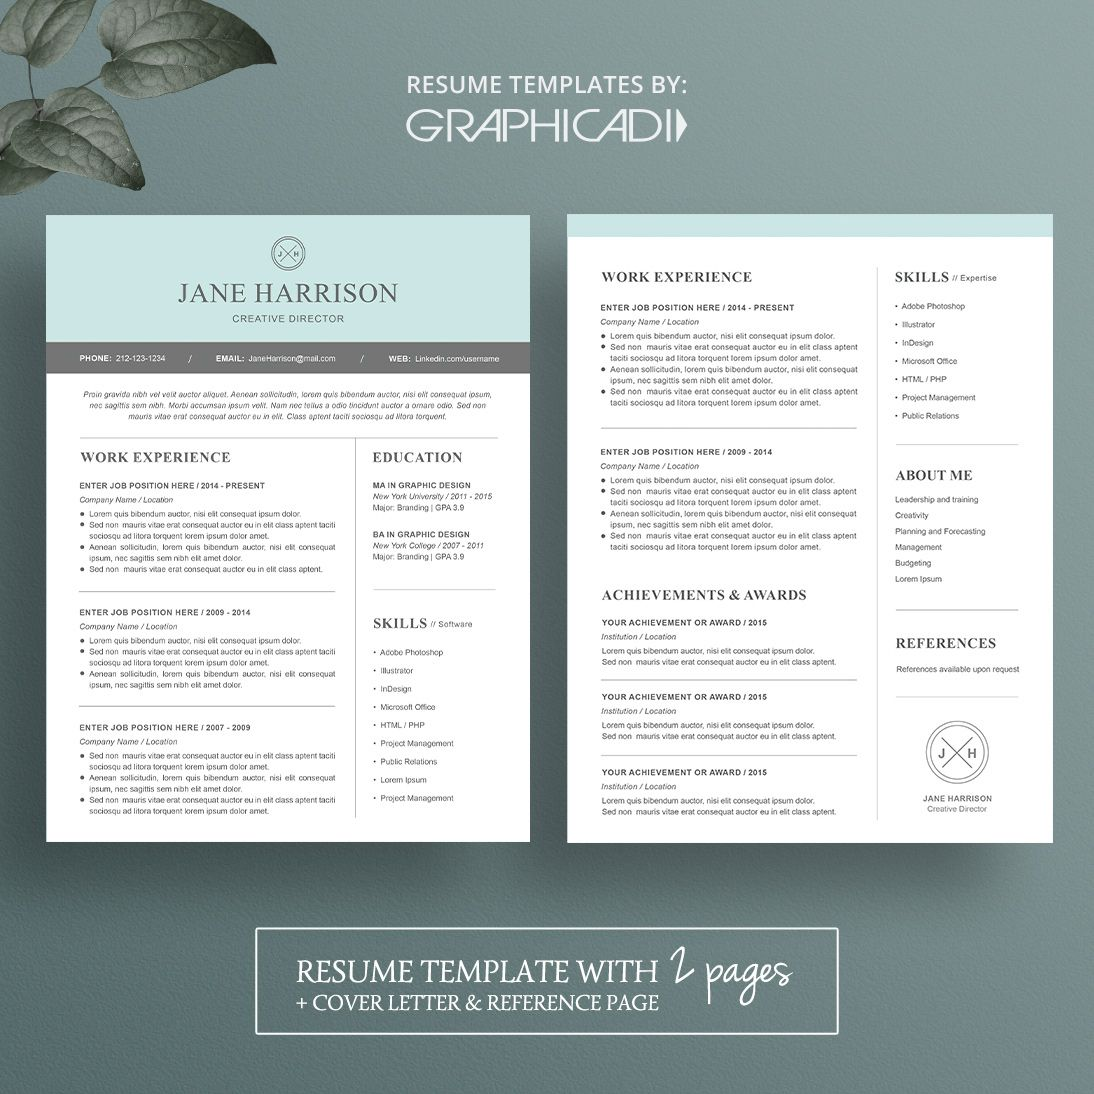 2 page cv template free modern resume template, education summary examples for sales representative with experience without sample